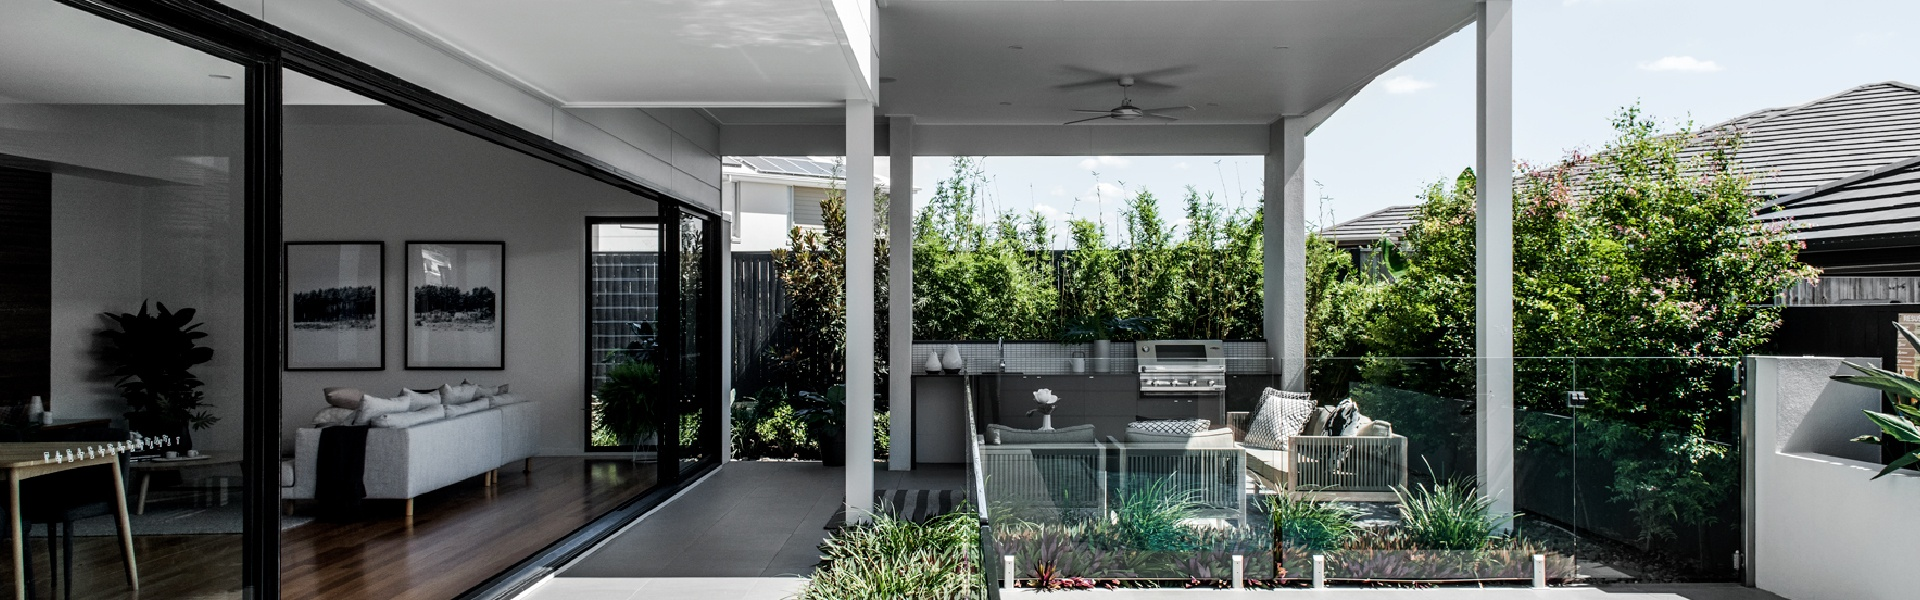 Kalka - Luxury Small Lot Home Builders Brisbane